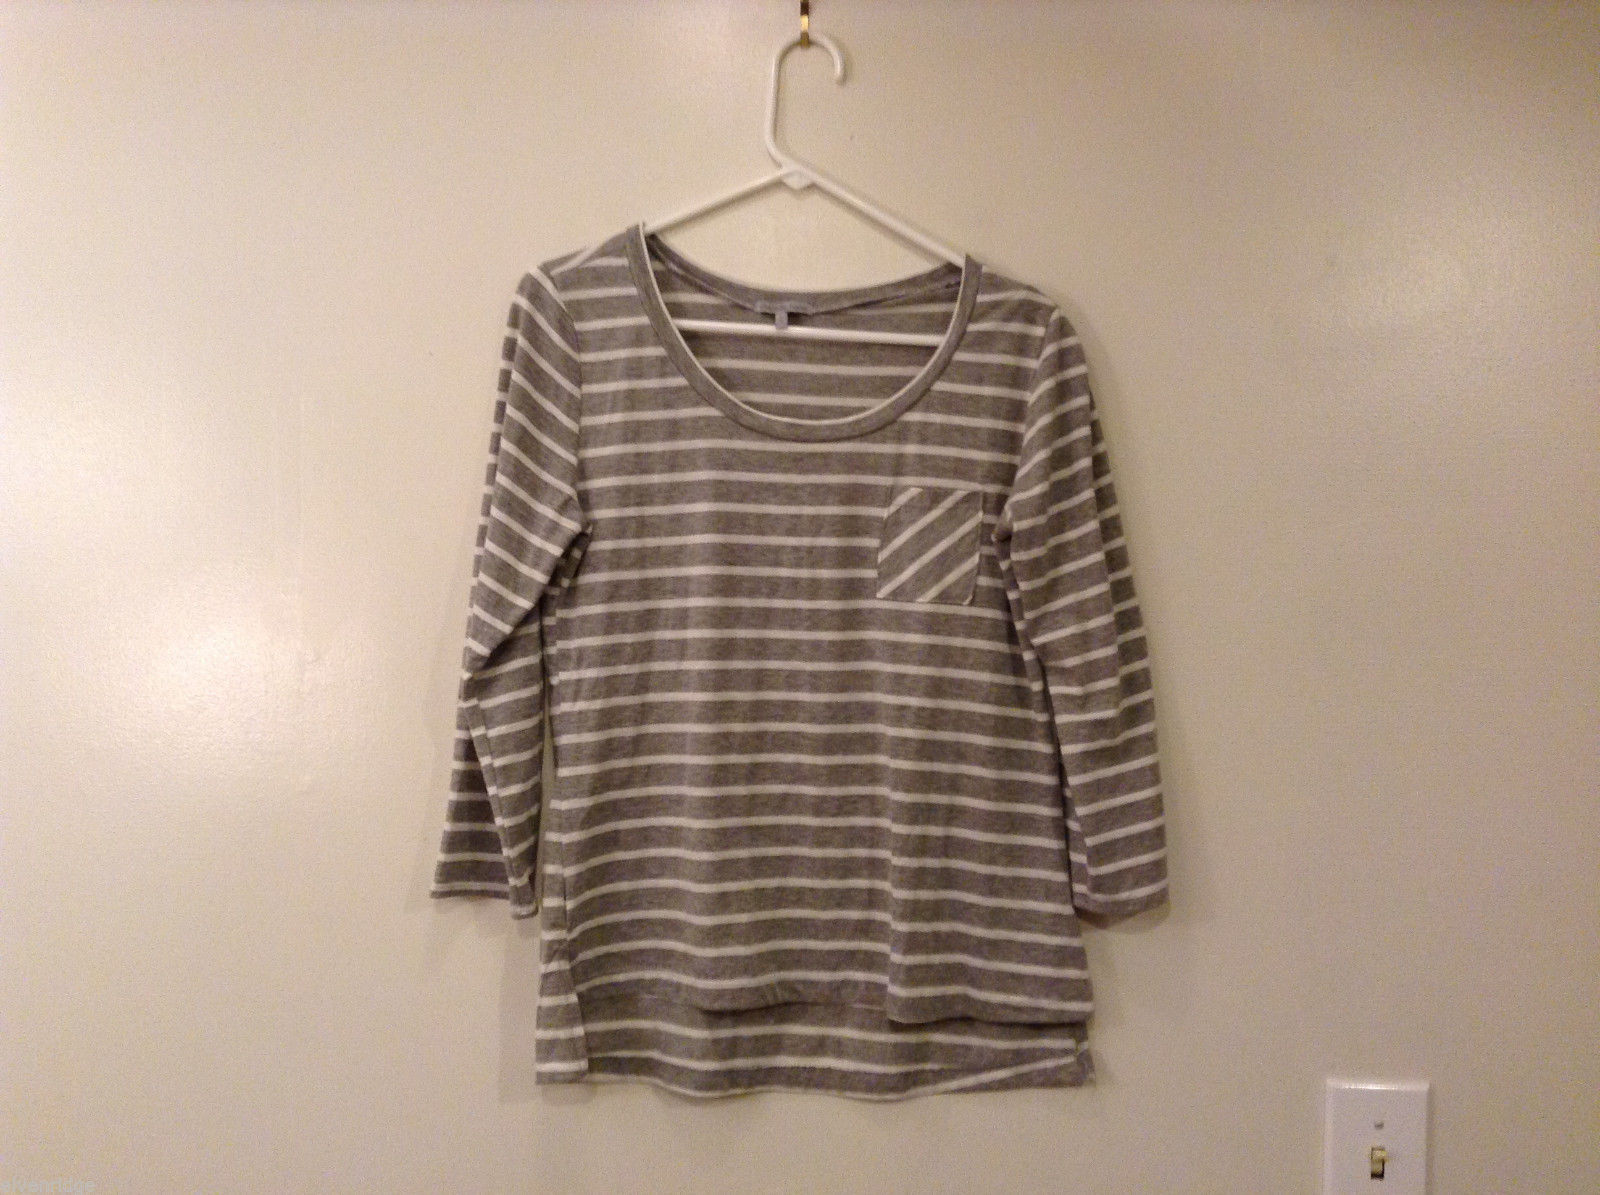 Charlotte Russe Women's Size L T-Shirt Long Sleeves Gray Striped Crew Neck Hi-Lo